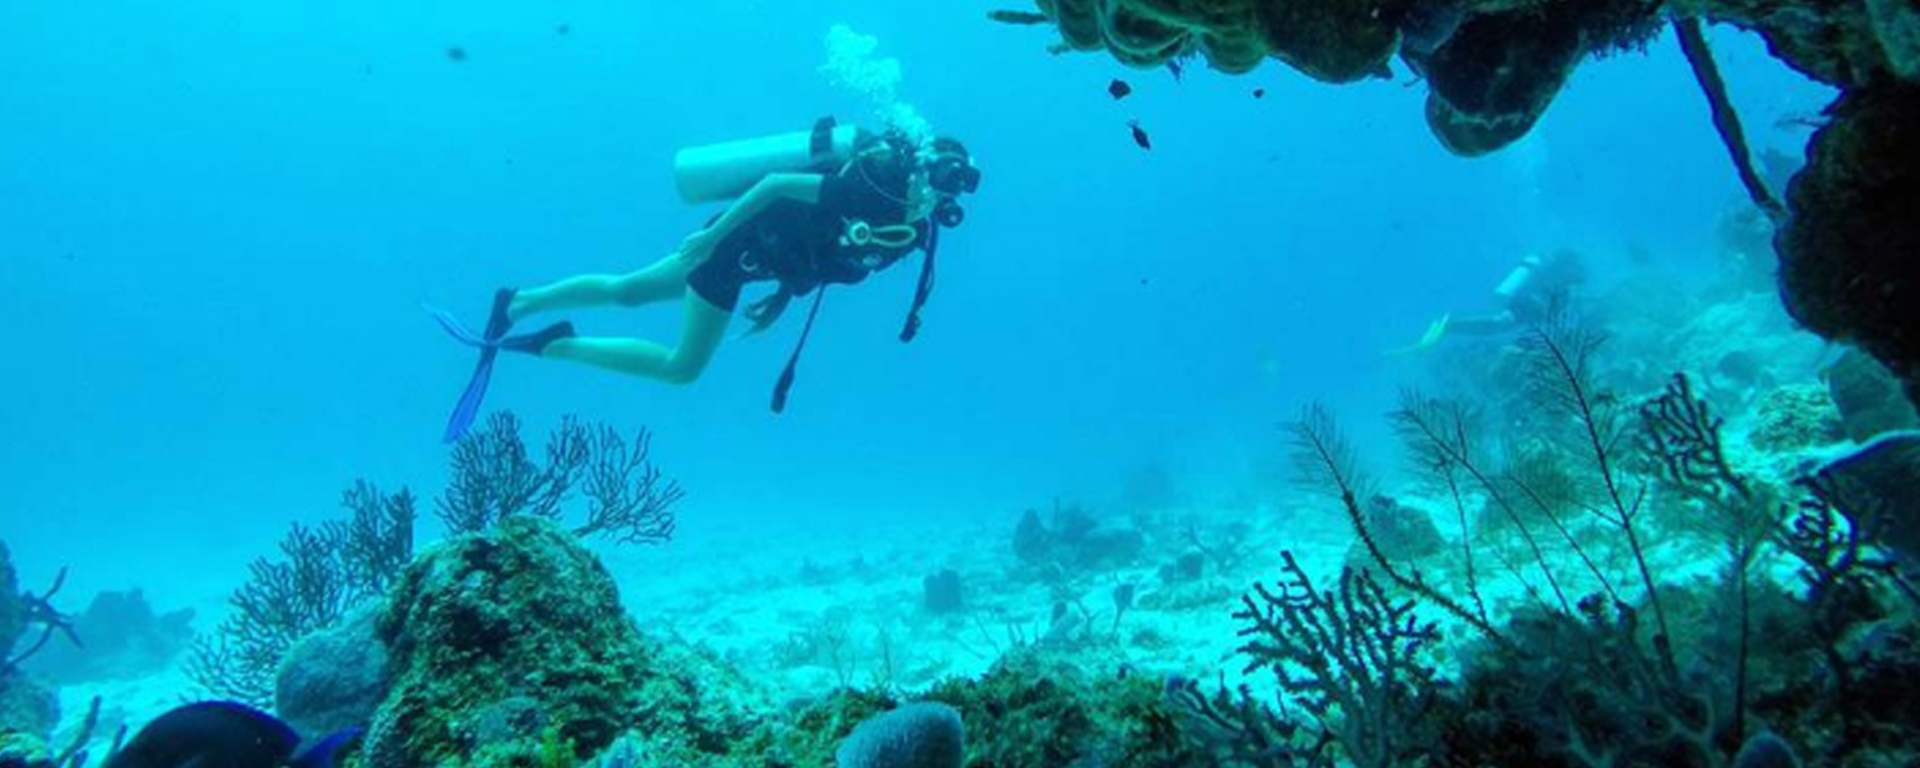 scuba diving in north america essay Getting certified is crucial before attempting a dive, and if you choose to give it a go, we've compiled some of the best dive sites in north america for you to visit.